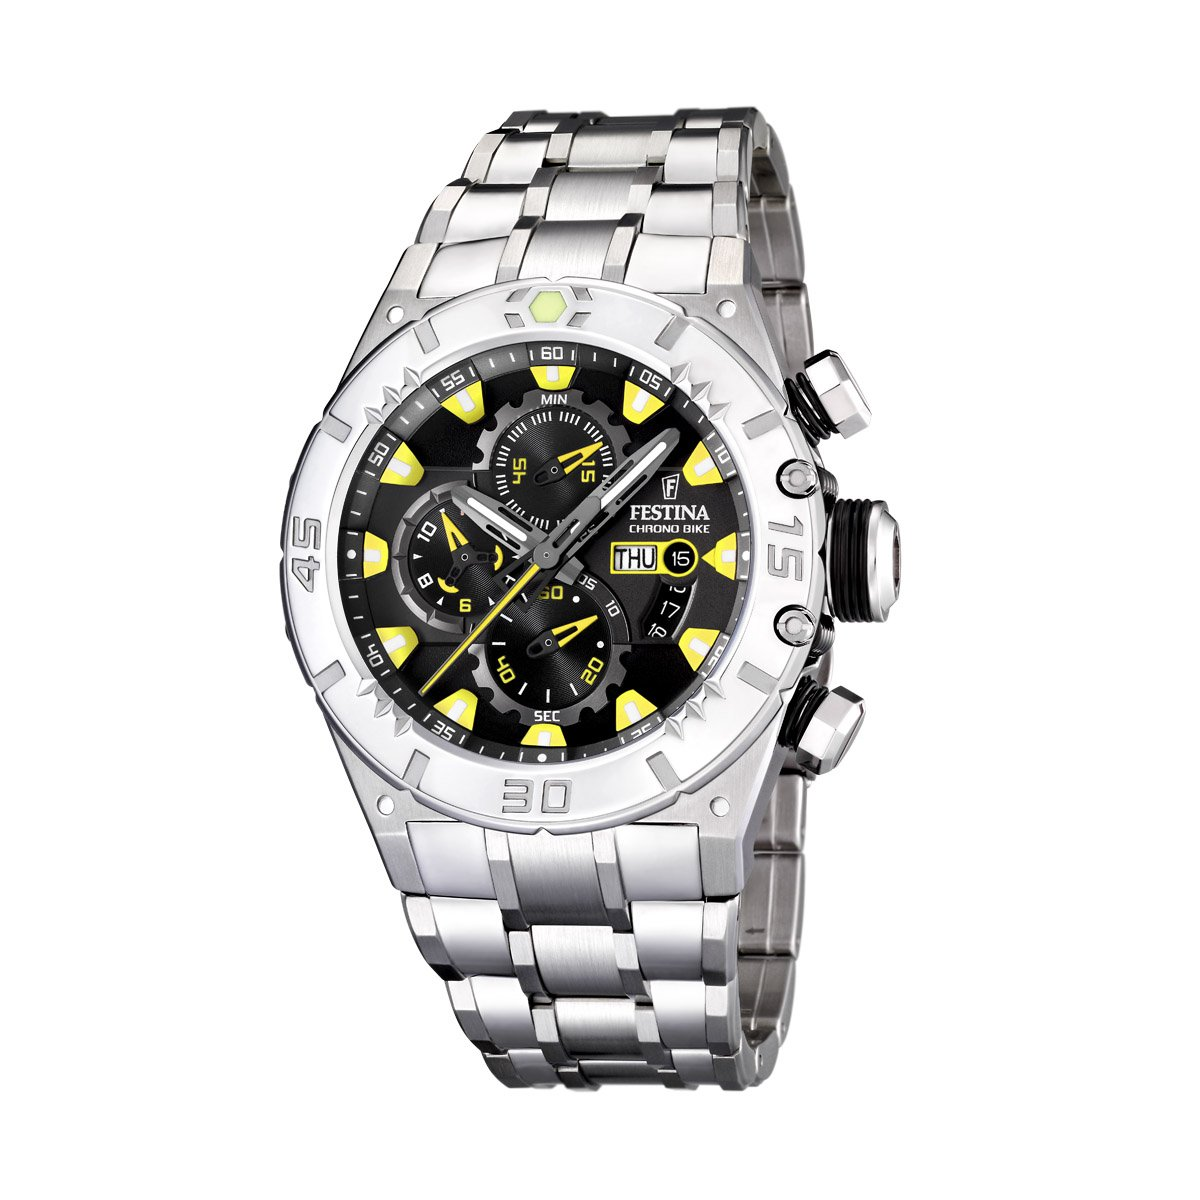 Amazon.com: Festina hombre Le Tour de France f16527/2 Reloj ...